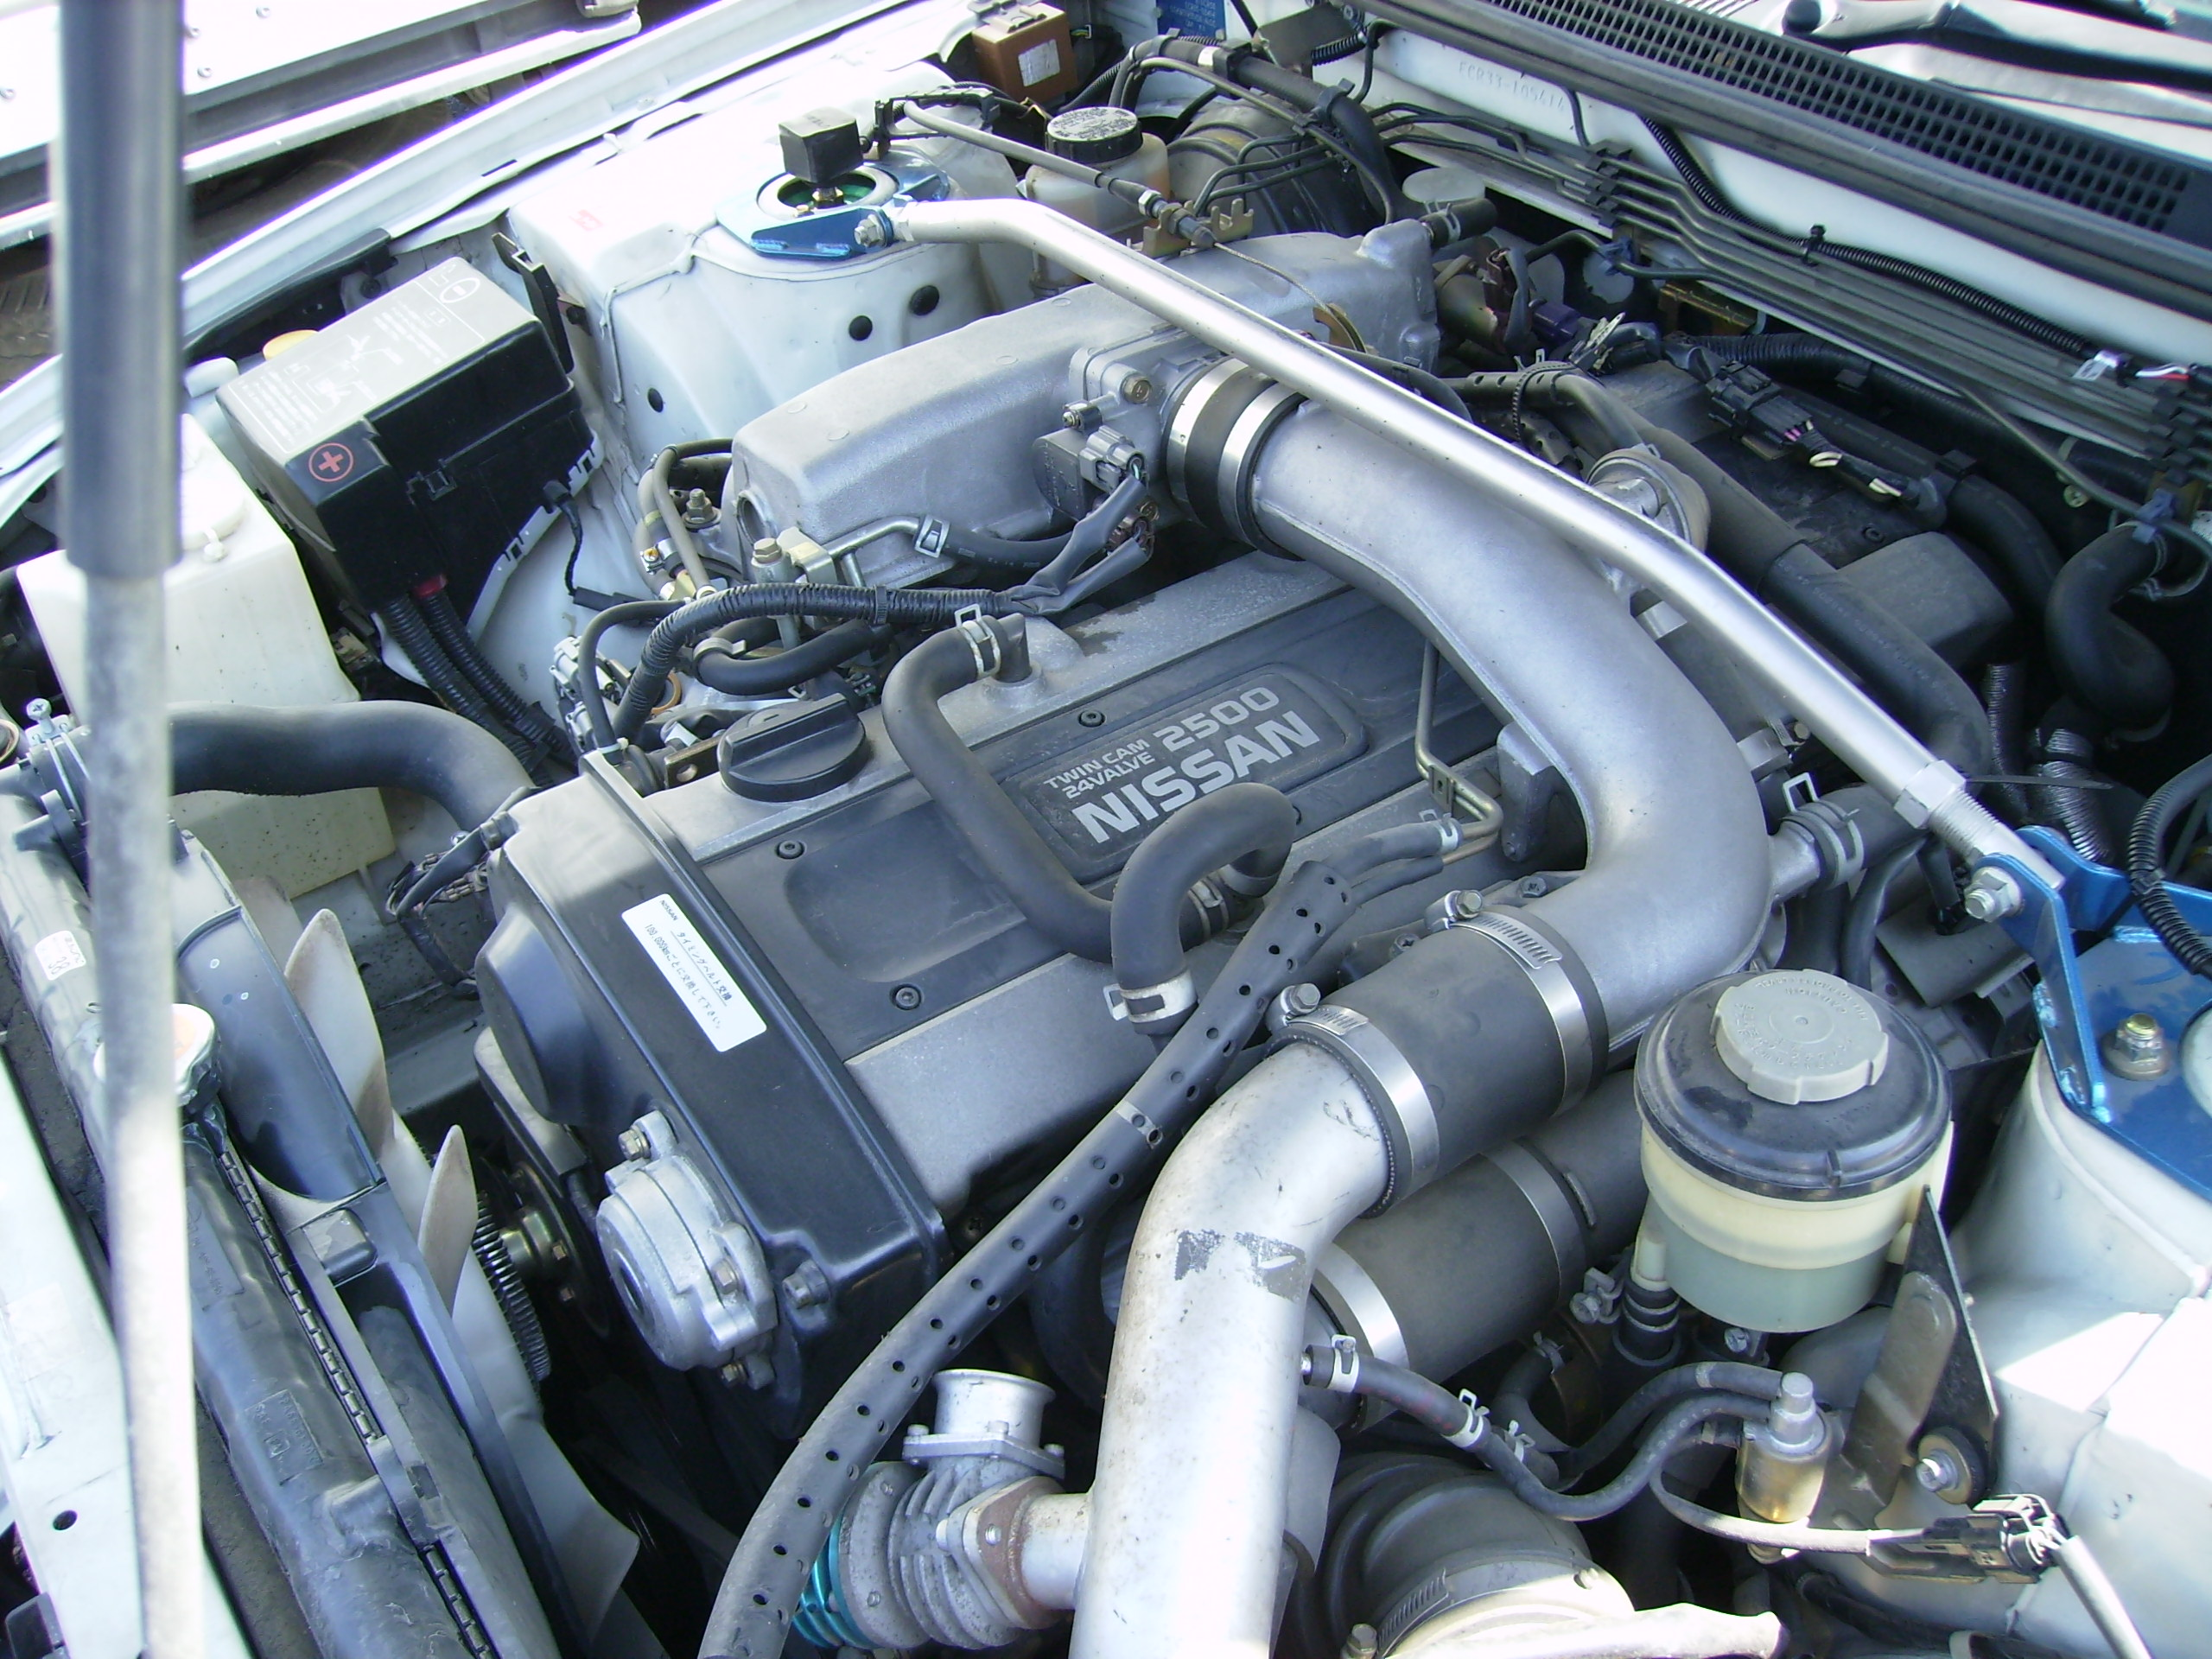 1996 Nissan Skyline R33 Gts-t engine